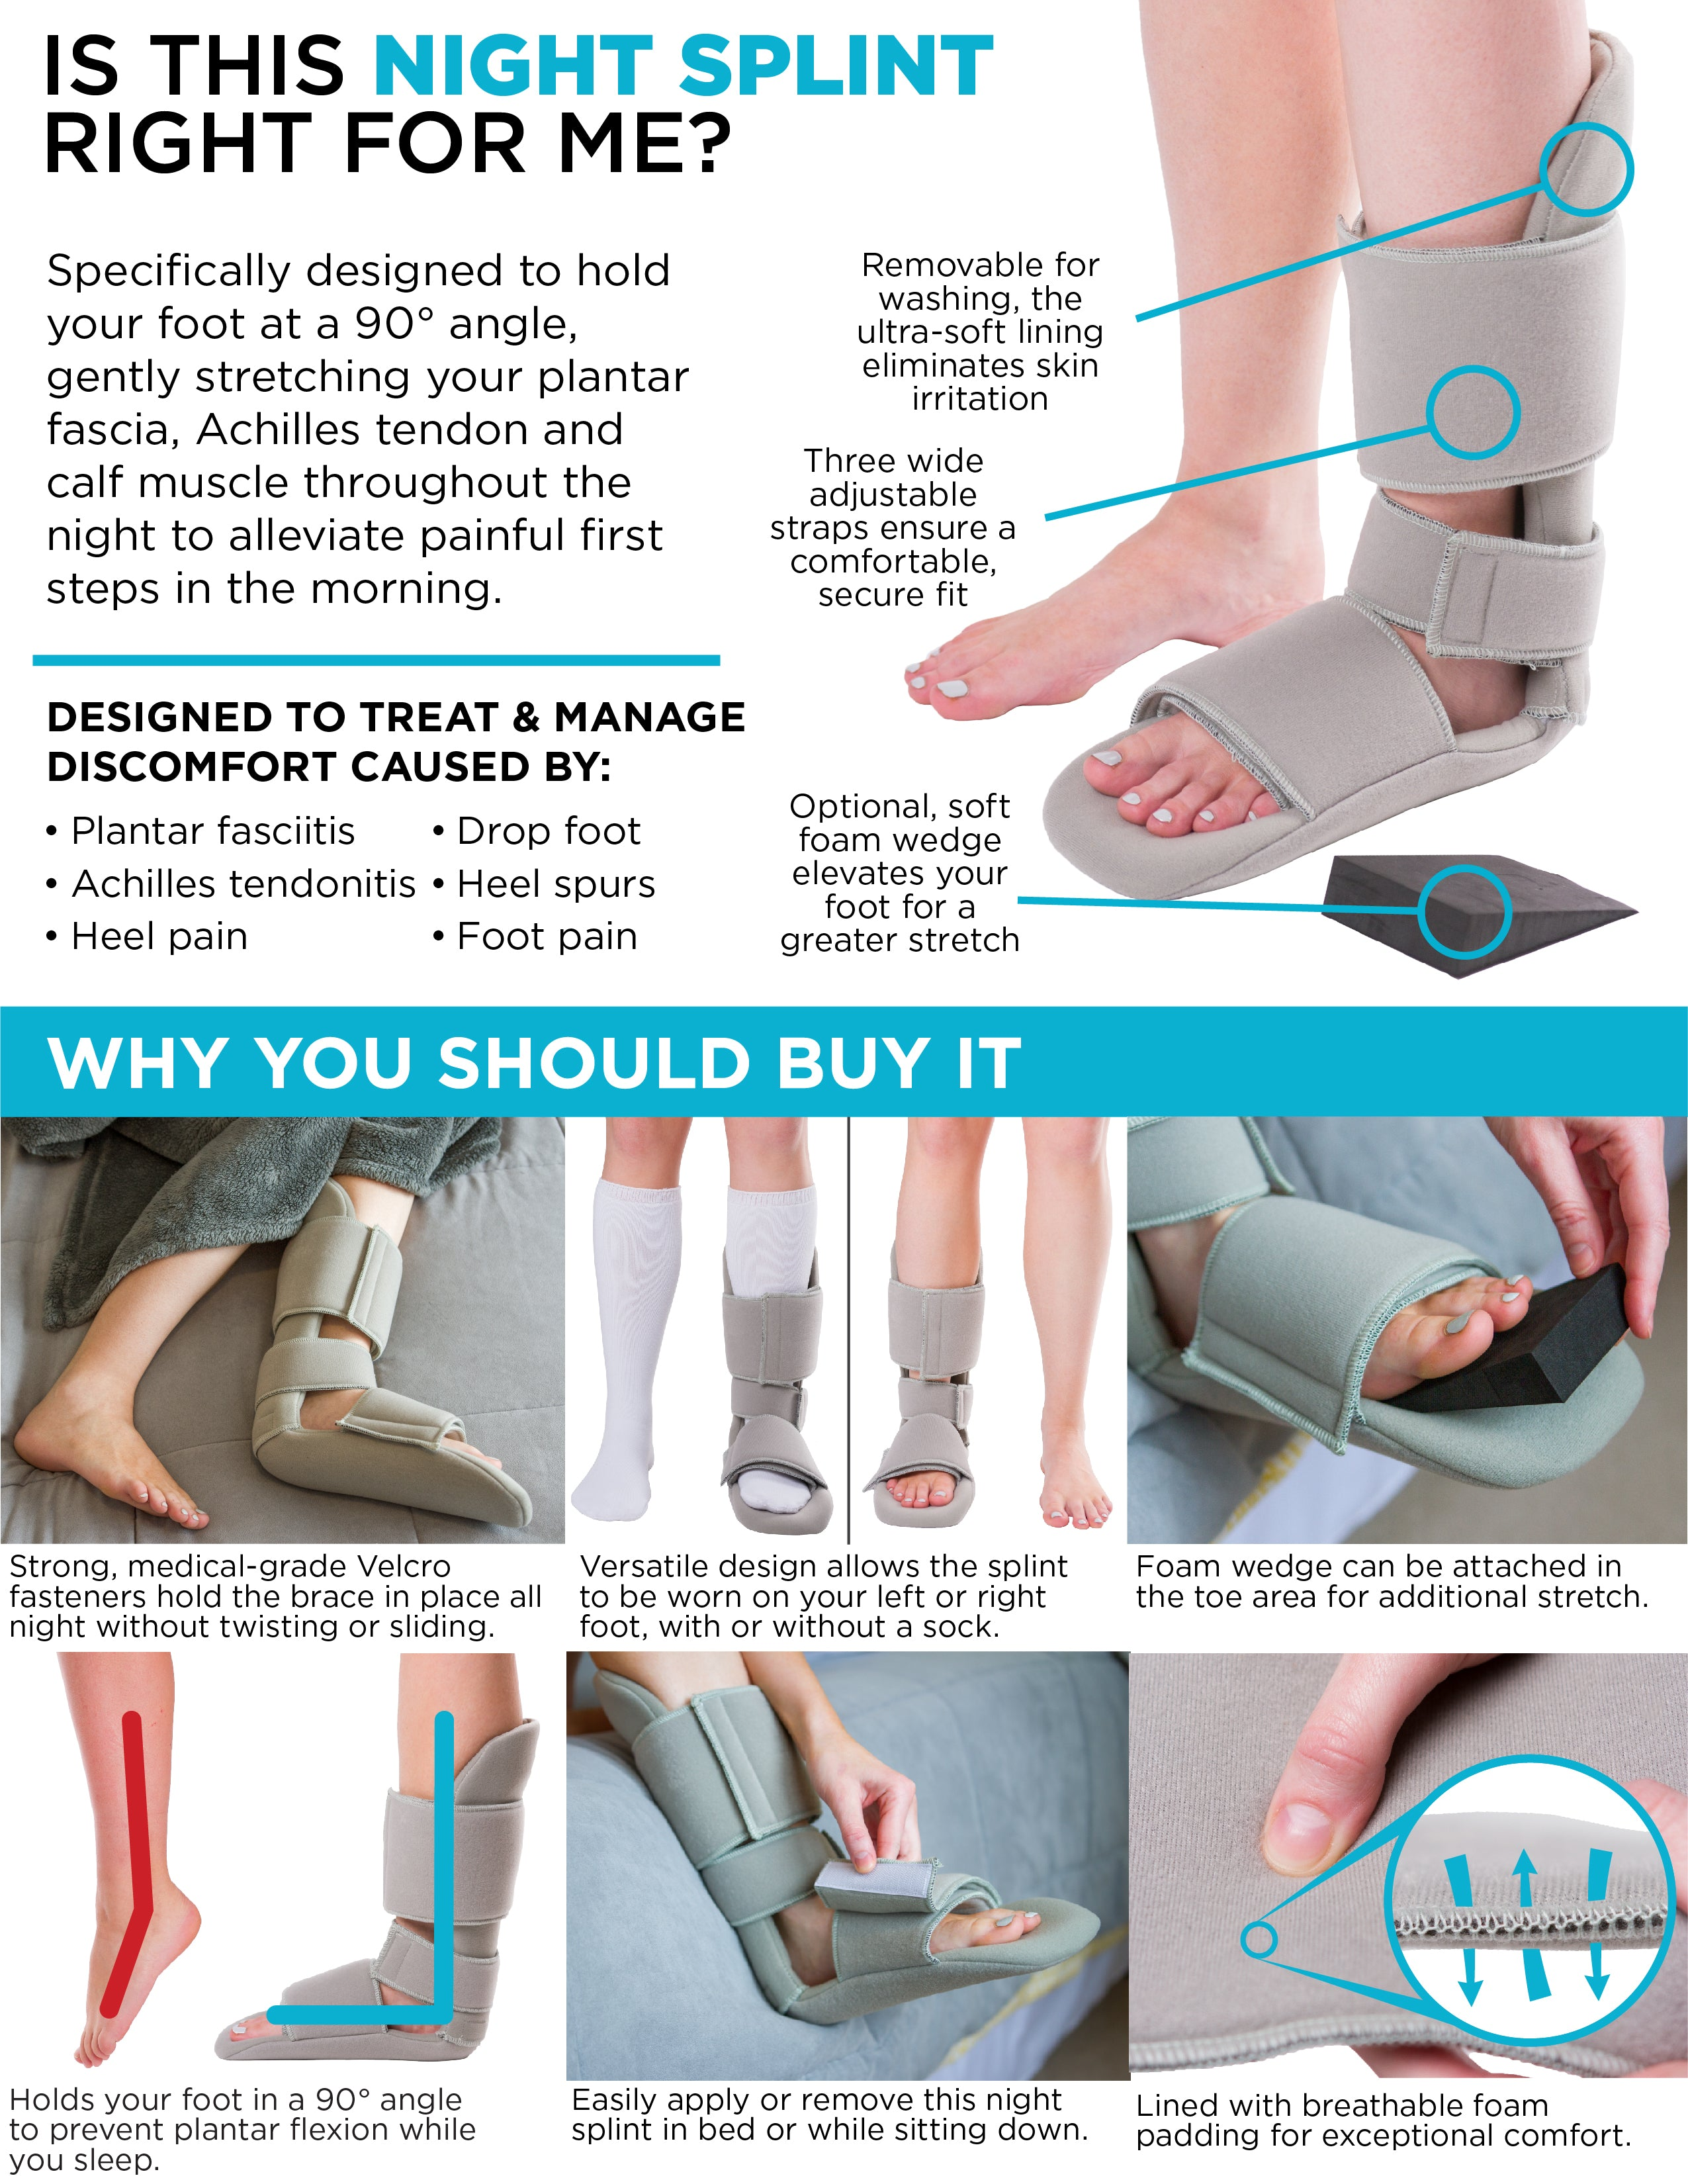 I Slept in This Plantar Fasciitis Splint for 2 Weeks and It Completely Cured My Foot Pain